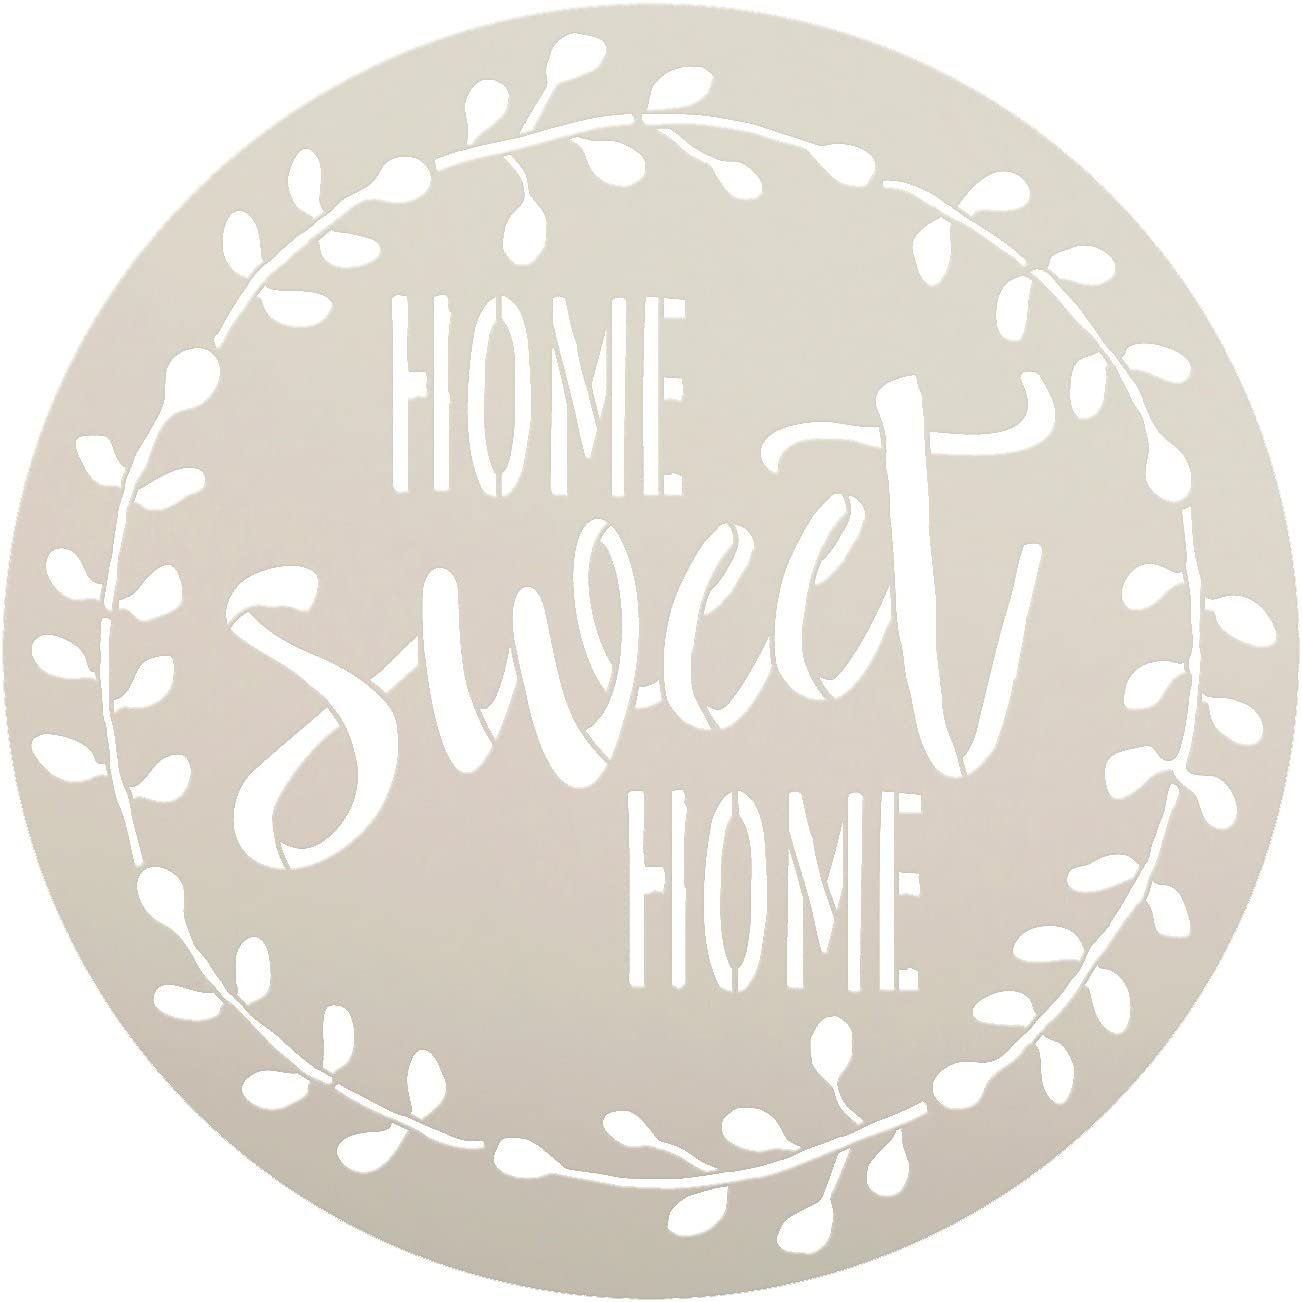 Home Sweet Home Stencil with Laurel Wreath by StudioR12   Reusable Mylar Template for Painting Wood Signs   Round Design   DIY Home Decor Country Farmhouse Style   Mixed Media   Select Size (15